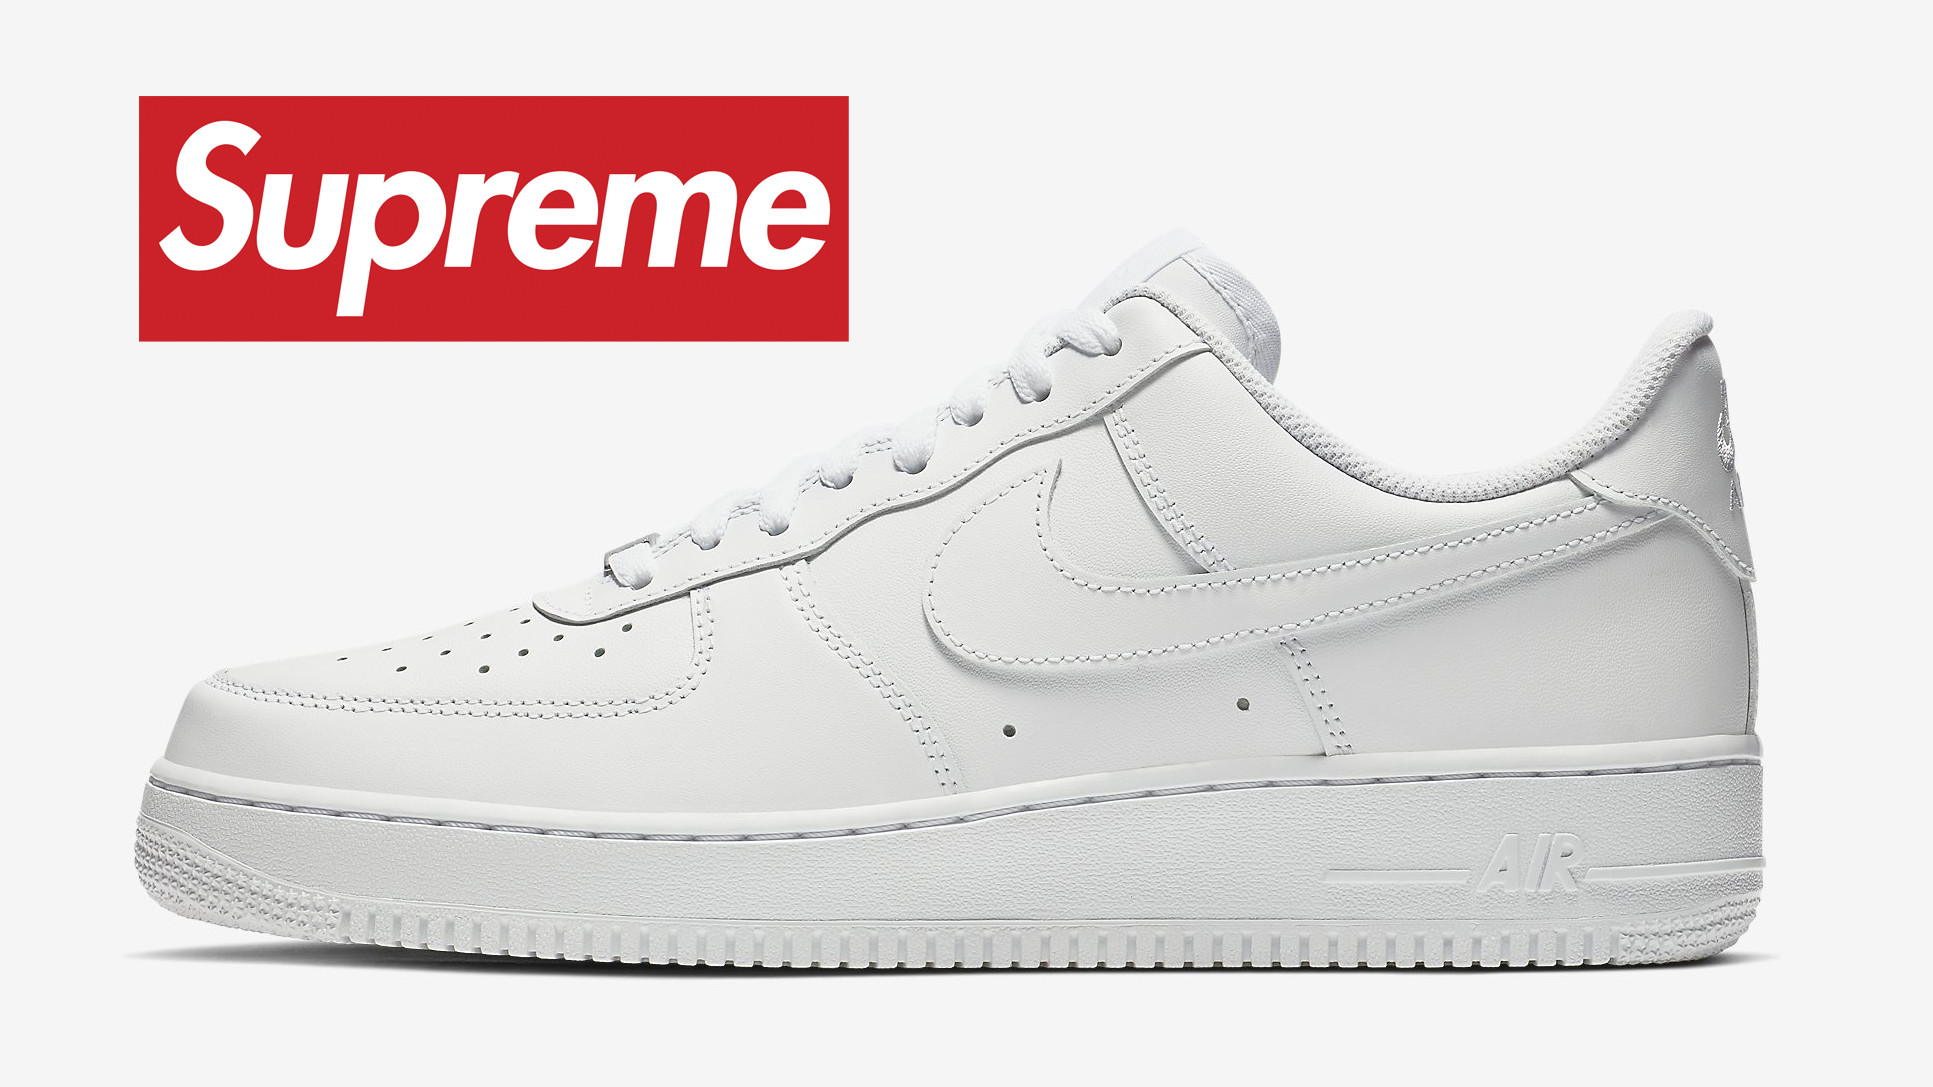 Supreme Drop List 2020.Supreme X Nike Air Force 1 Low 2020 Release Date Sole